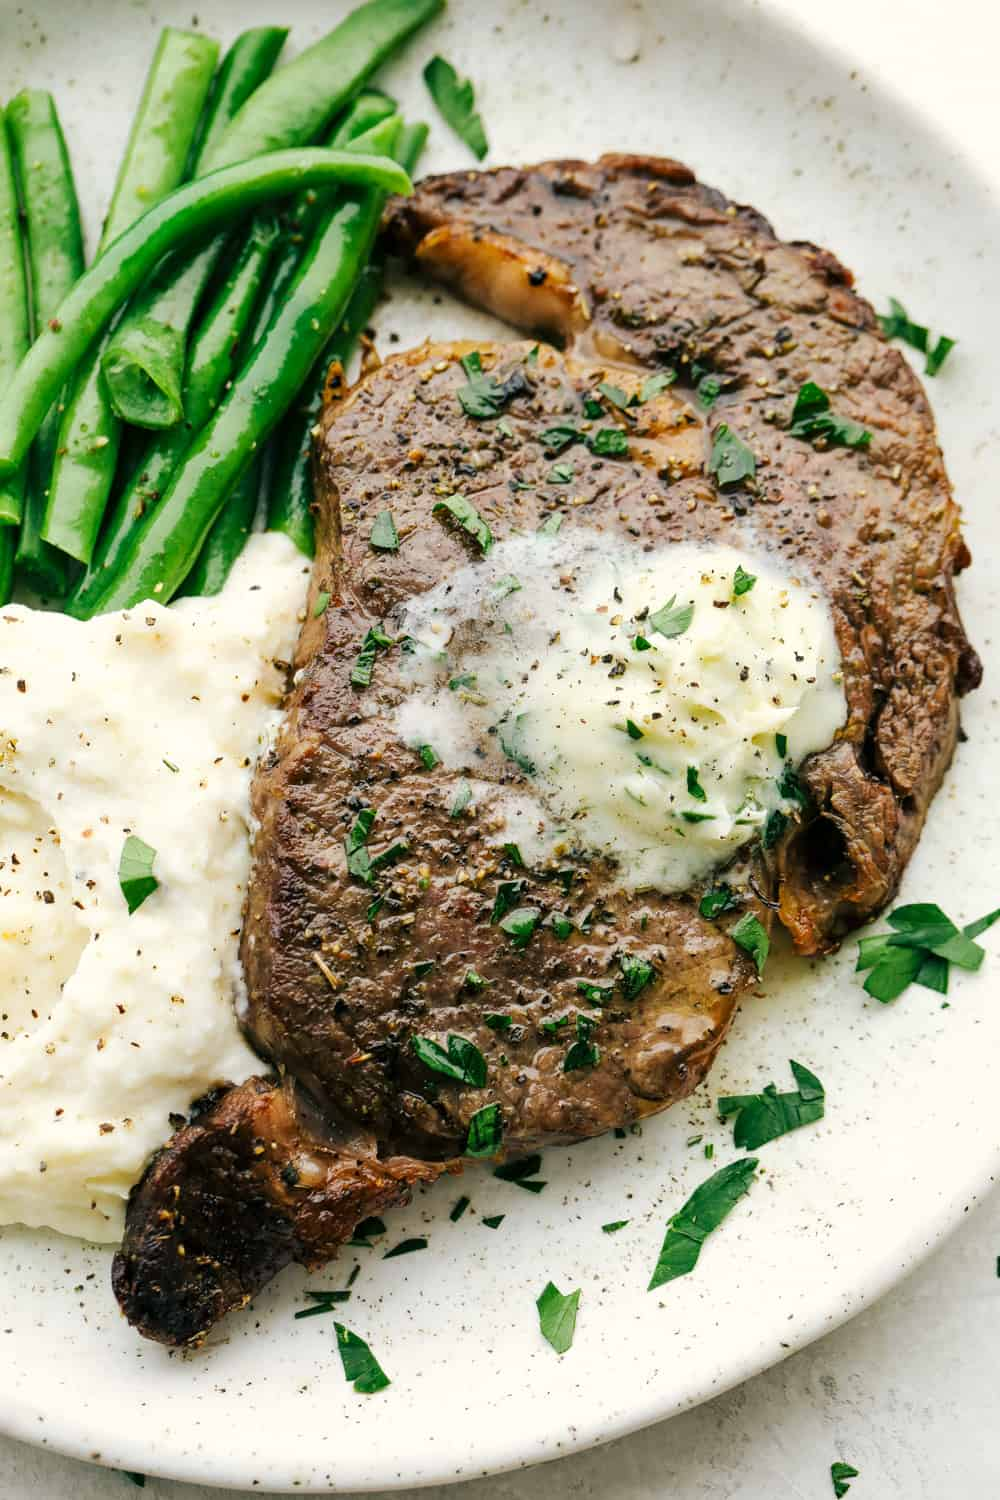 Perfect Air Fryer Steak with golden seared outside and tender juicy inside. Topped with garlic butter and a side of beans and potatoes.